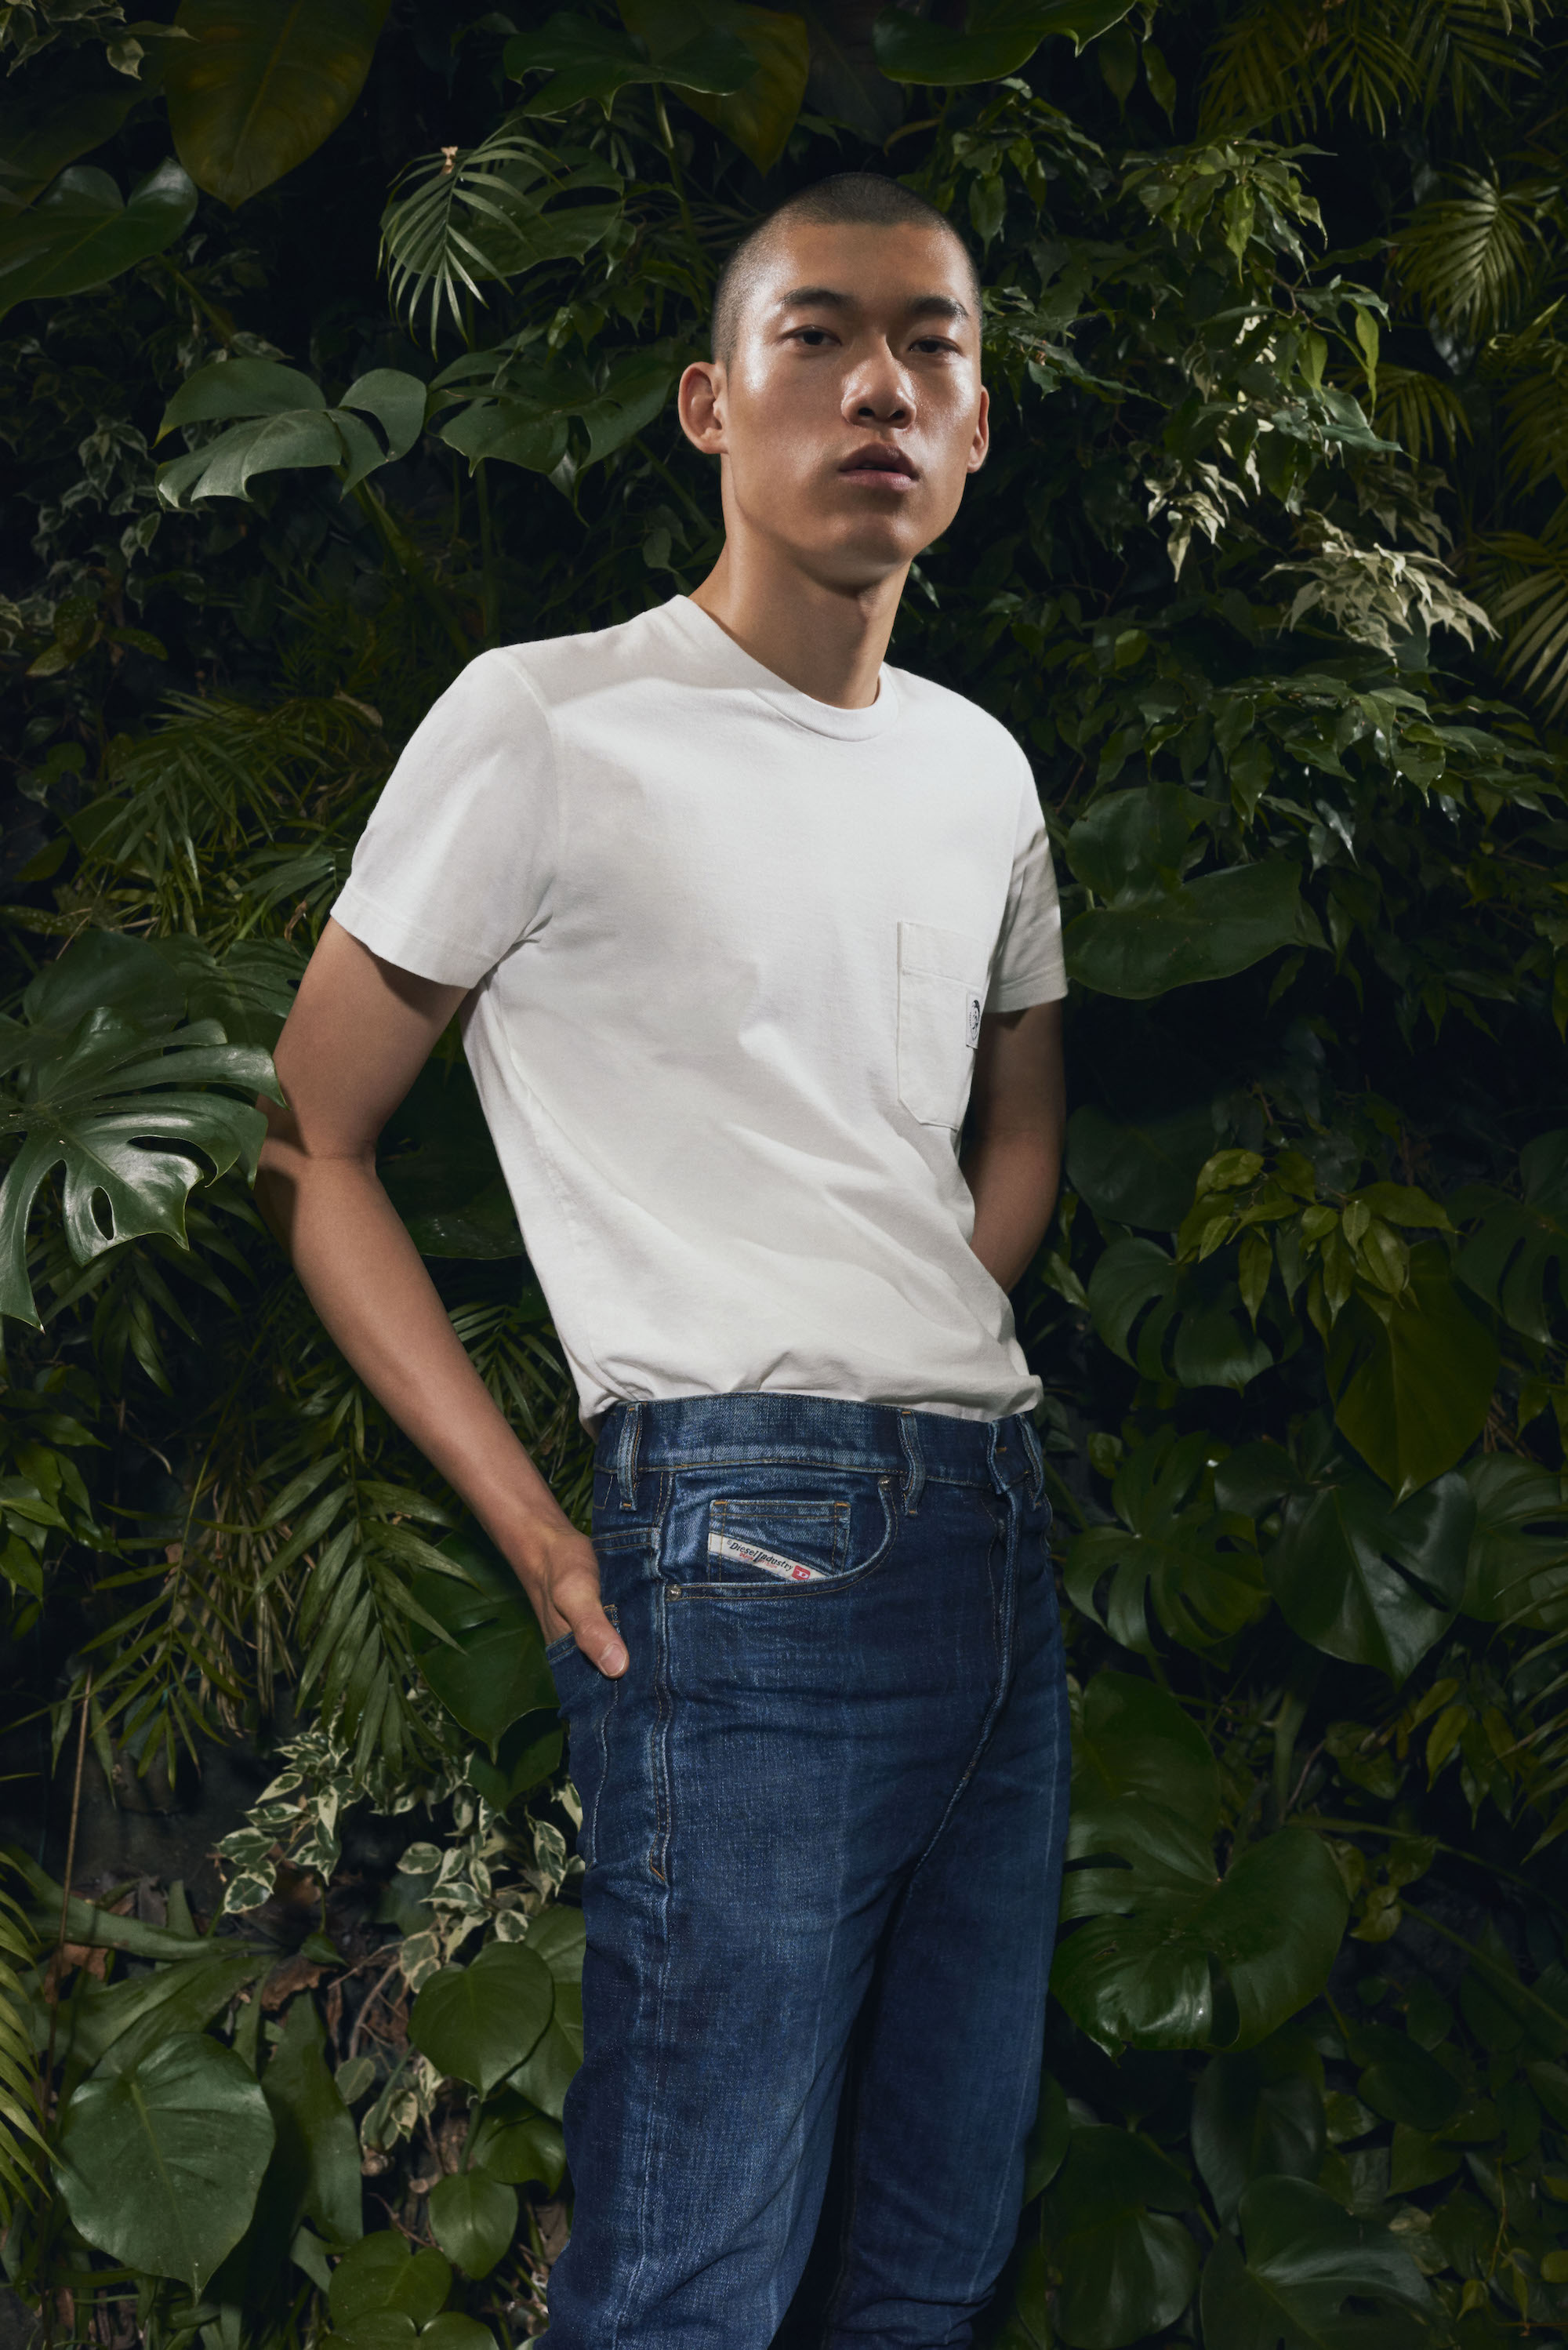 DIESEL INTRODUCES A MORE RESPECTFUL DENIM WITH BRAND'S DNA vertical male model